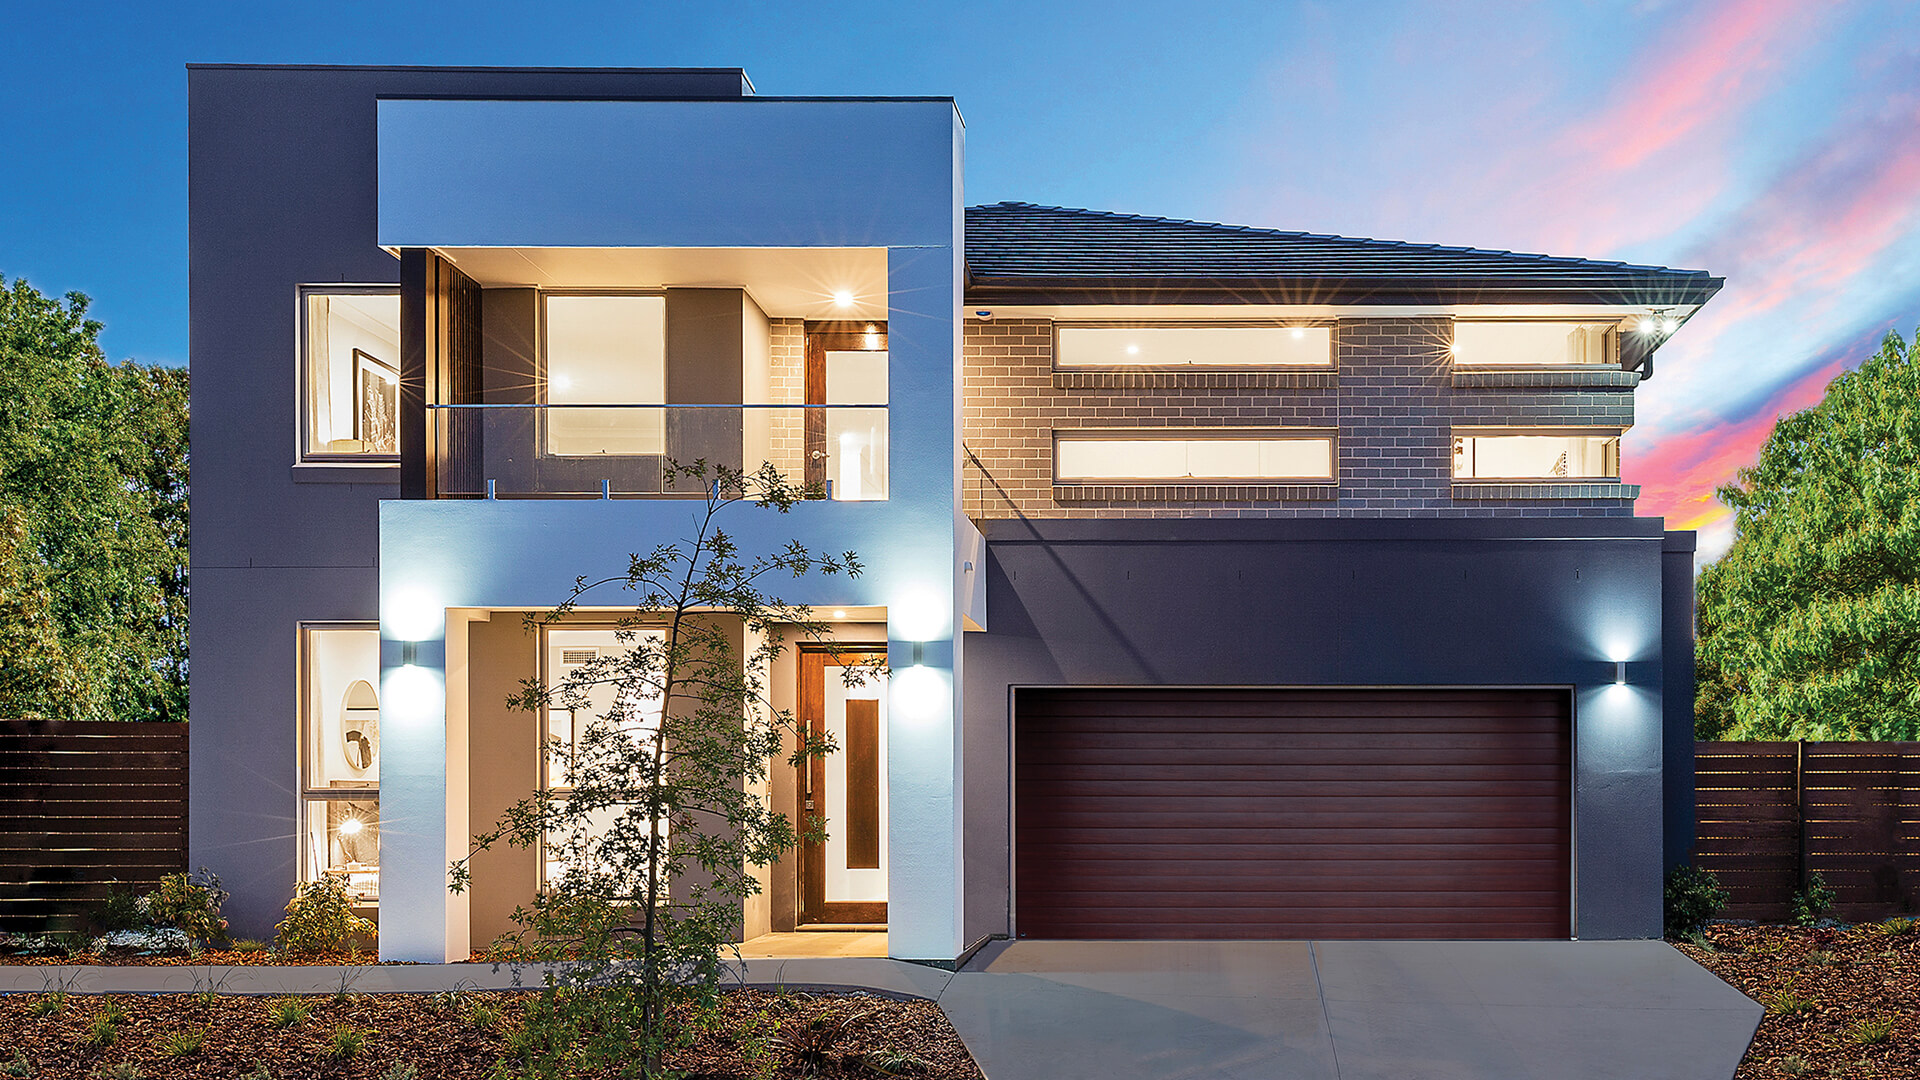 HomeworldLeppington GrandworthNewbury37